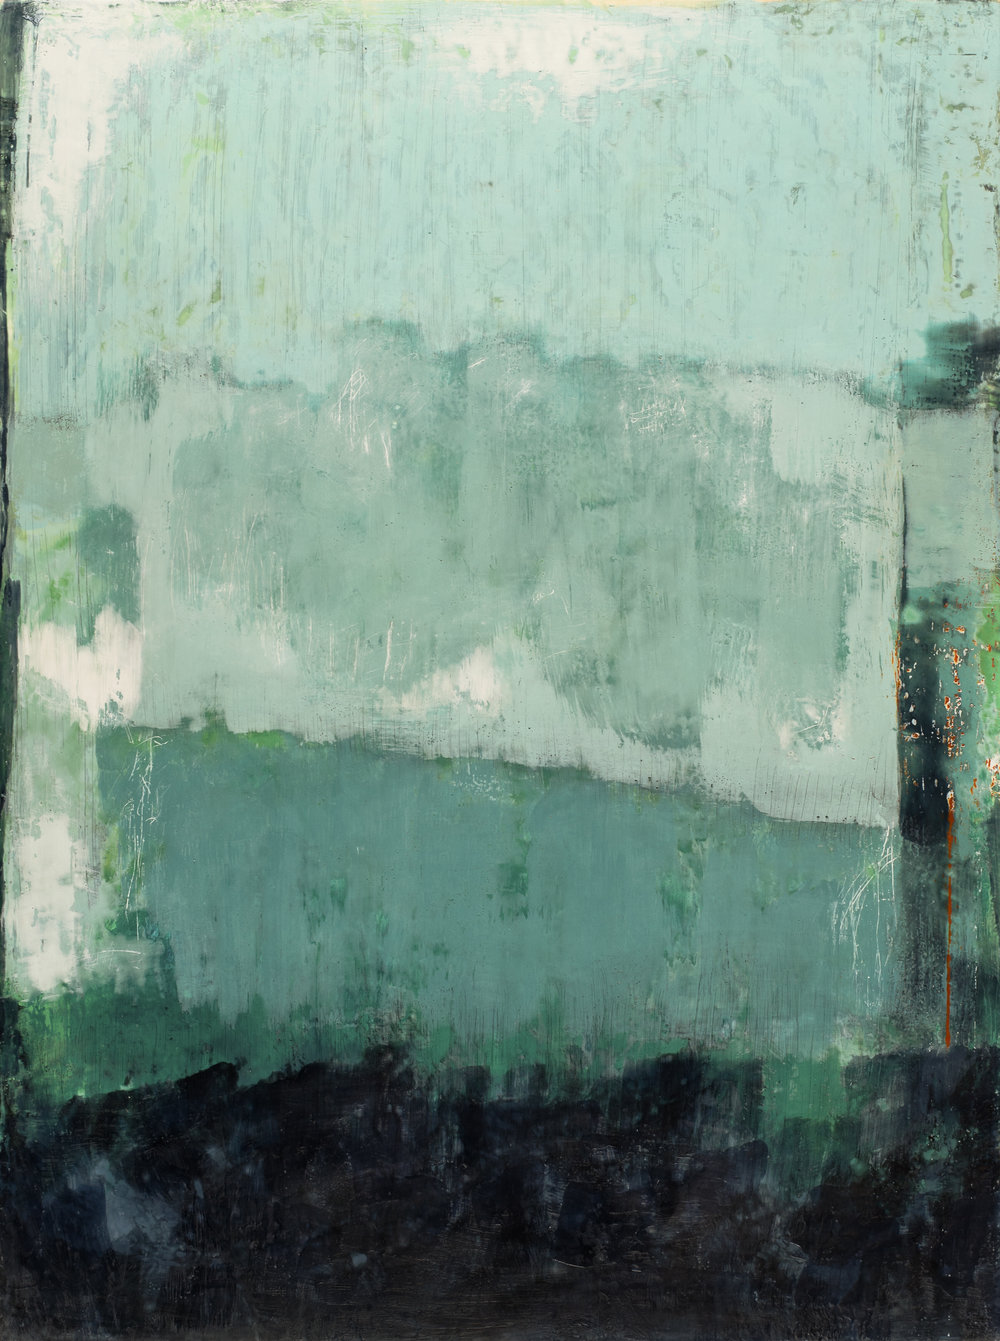 It Shall Come to Pass, Encaustic on Birch Panel, 2016